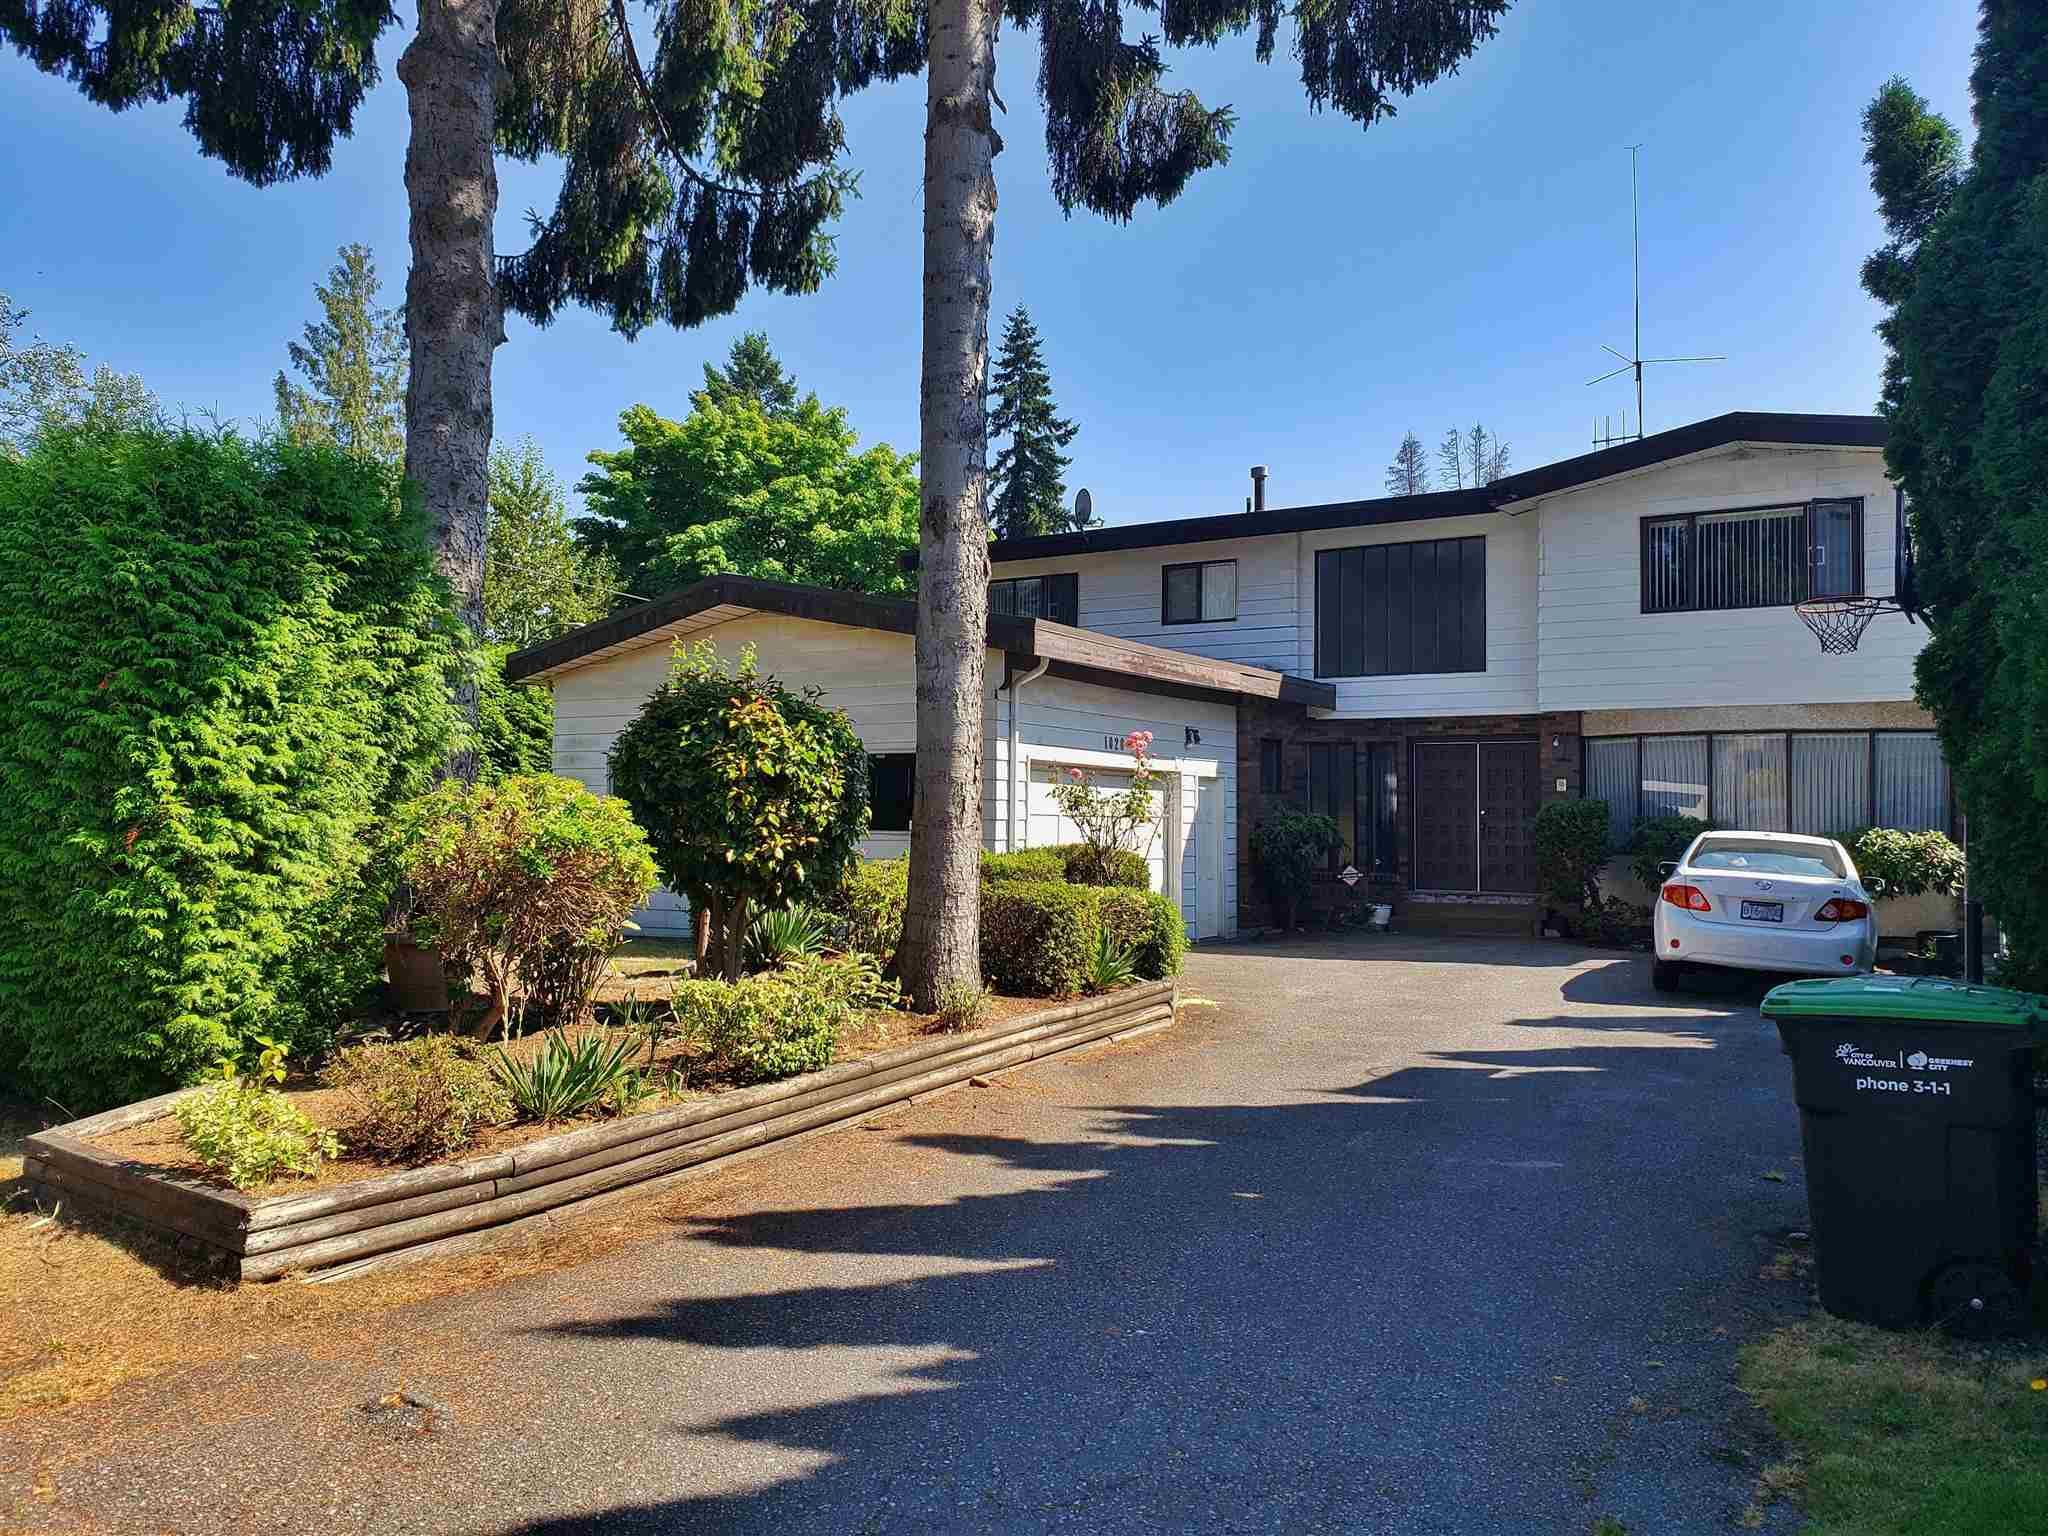 Main Photo: 1020 W 55TH Avenue in Vancouver: South Granville Land Commercial for sale (Vancouver West)  : MLS®# C8039642